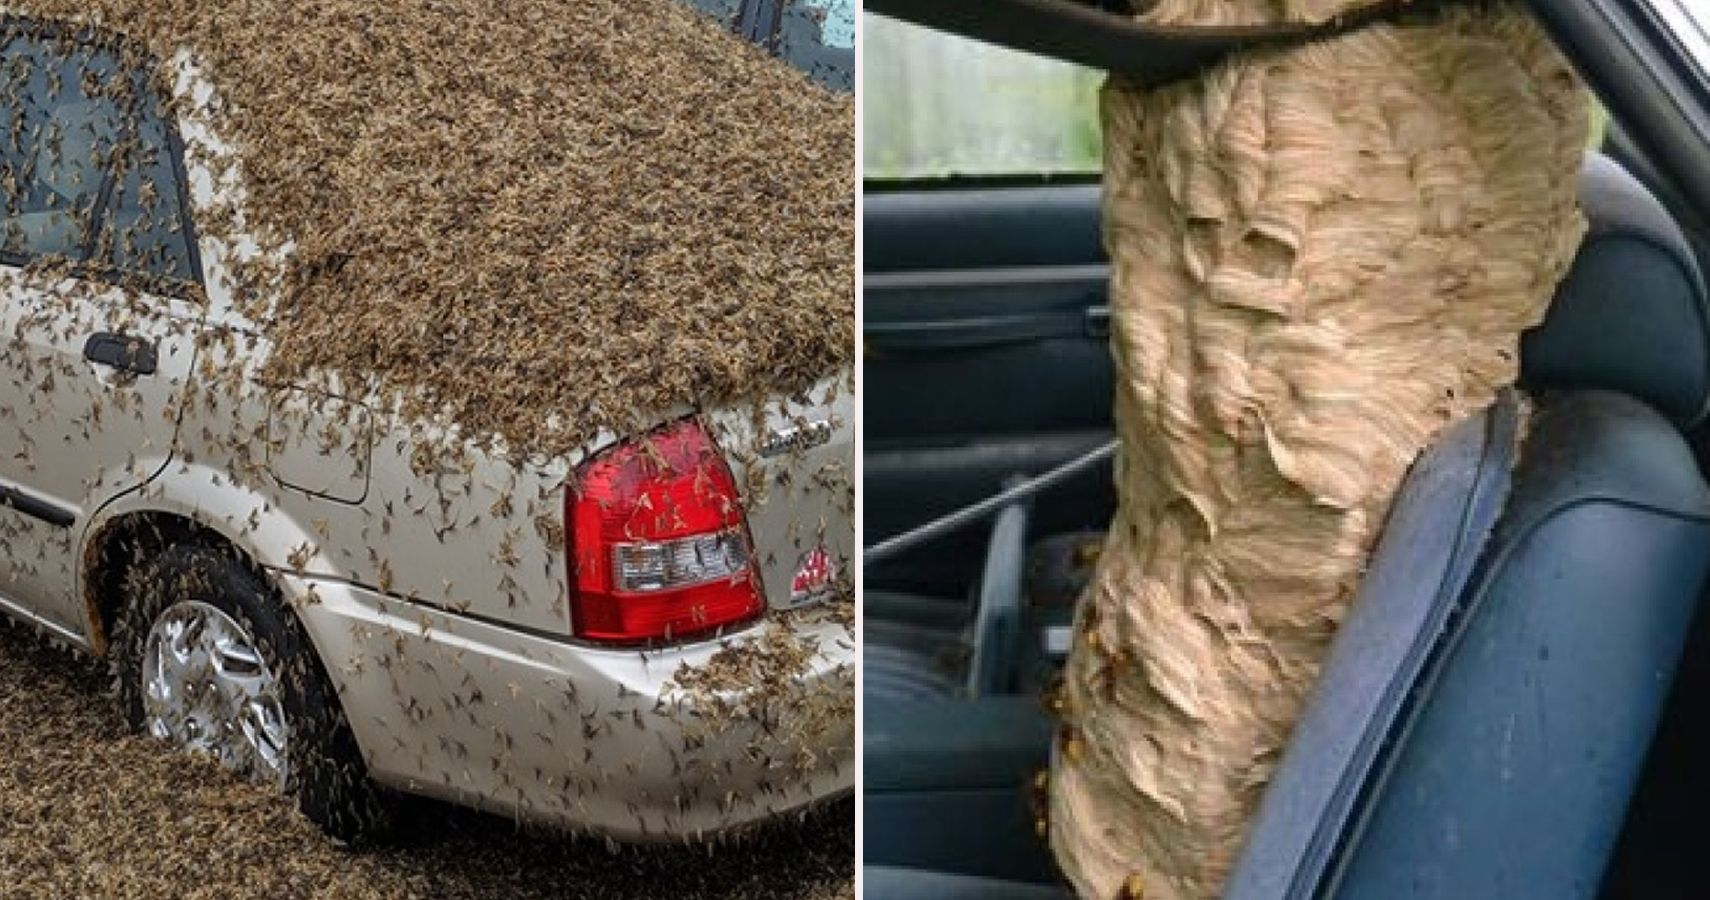 10 Unsettling Images Of Cars Covered In Disgusting Bugs